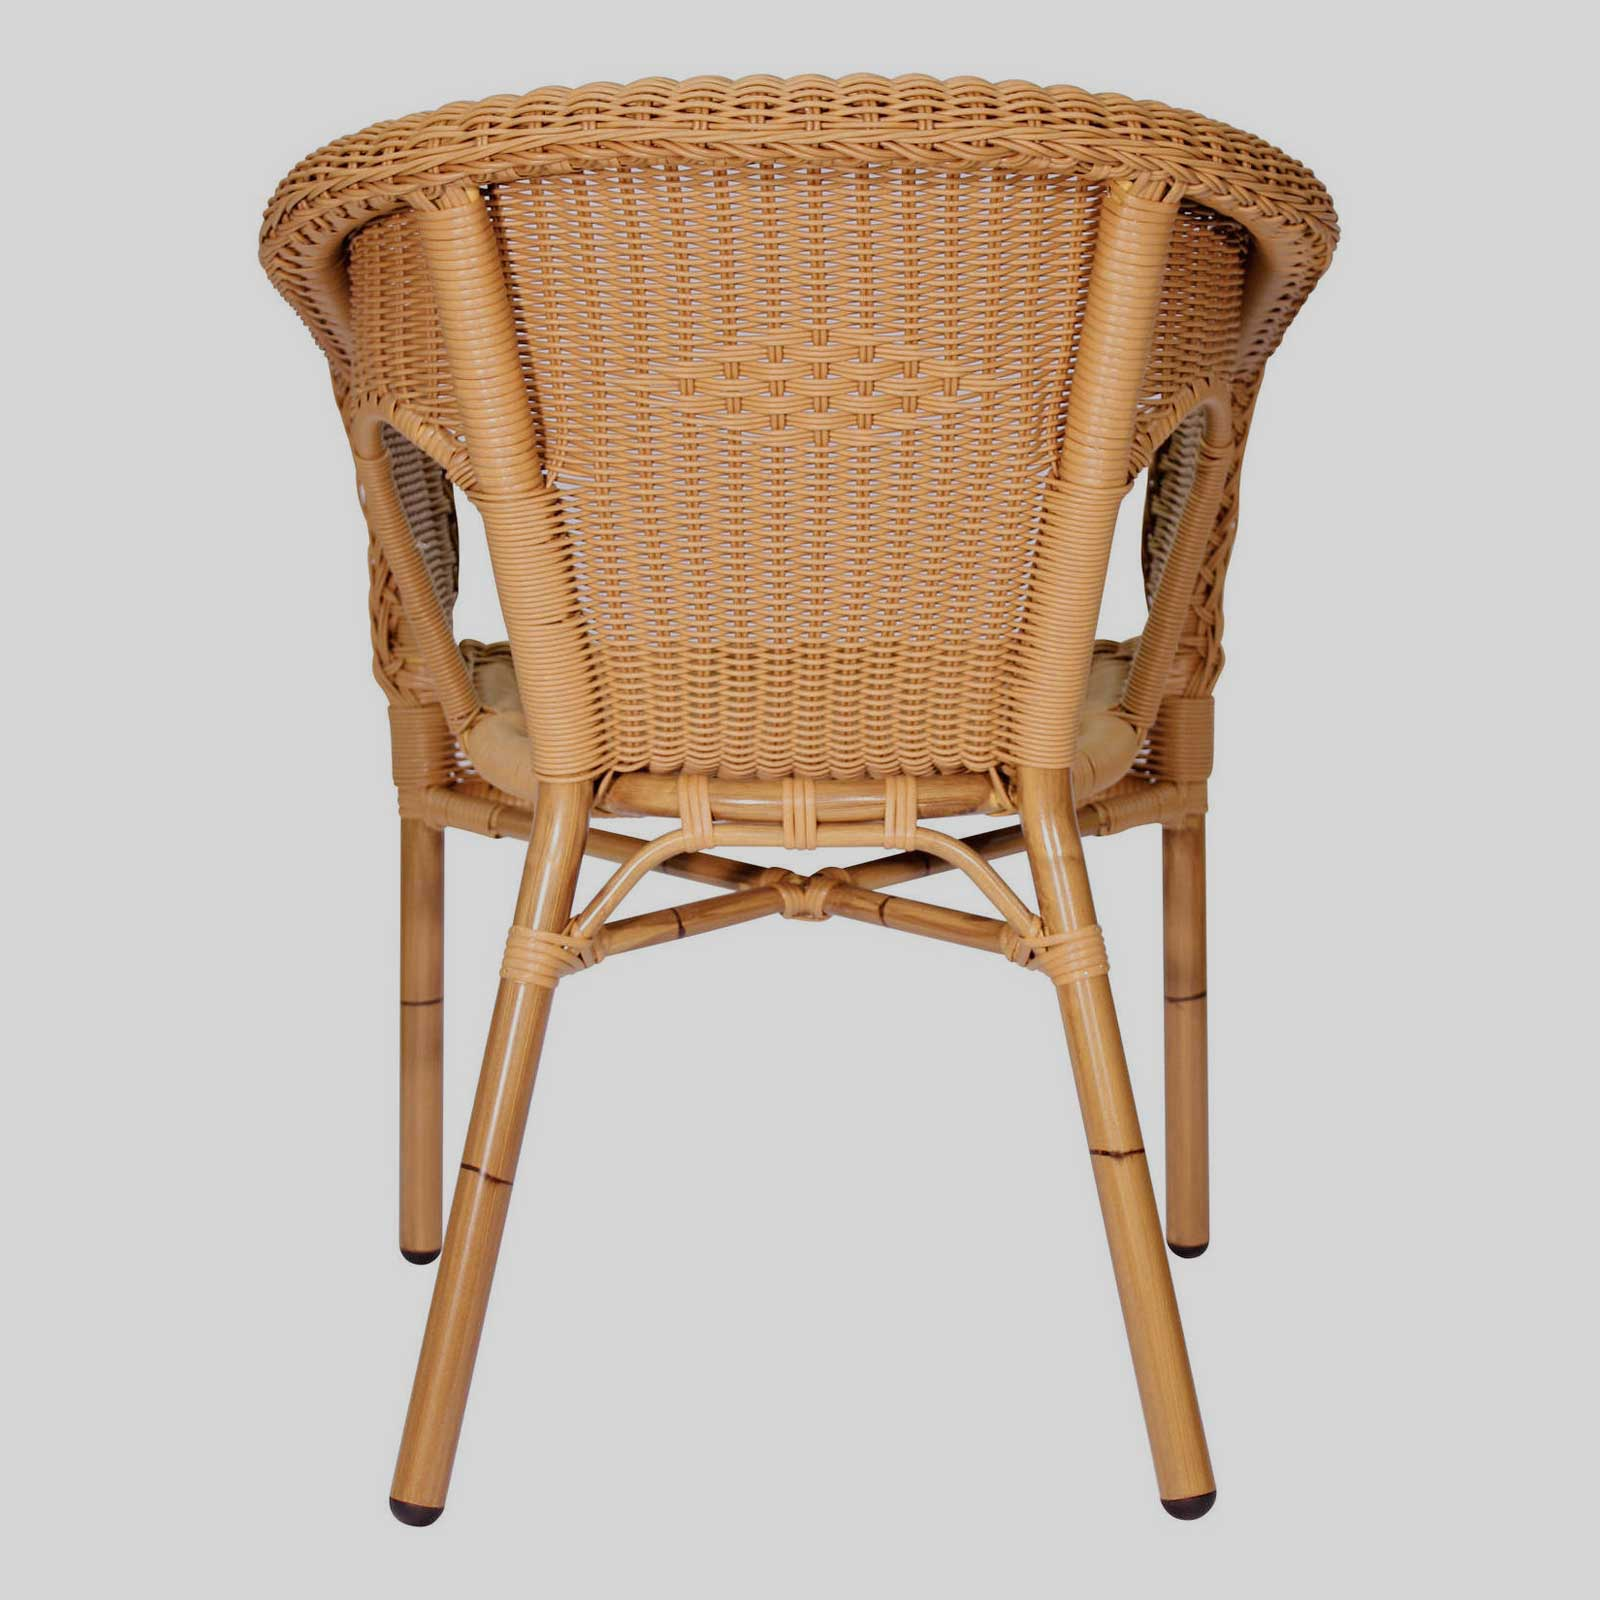 Design Home Office Outdoor Wicker Chairs Brazil Concept Collections